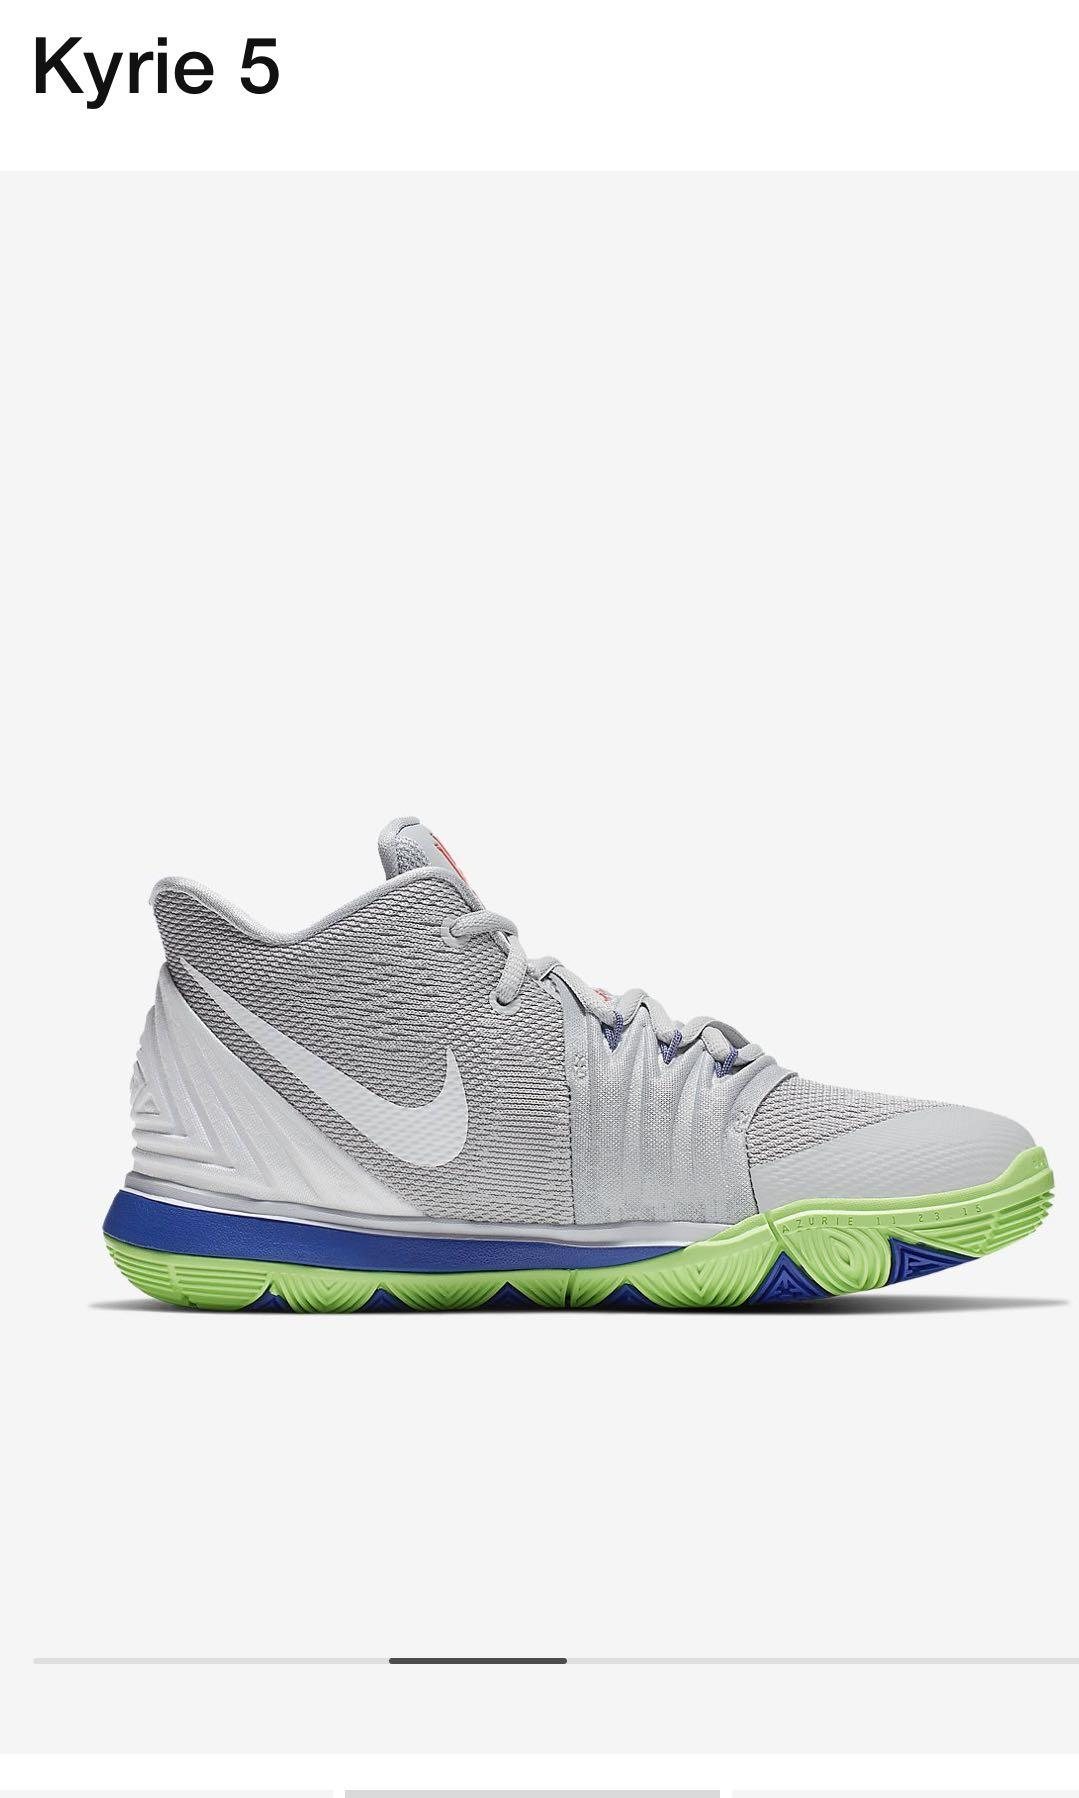 kyrie 5 basketball shoes